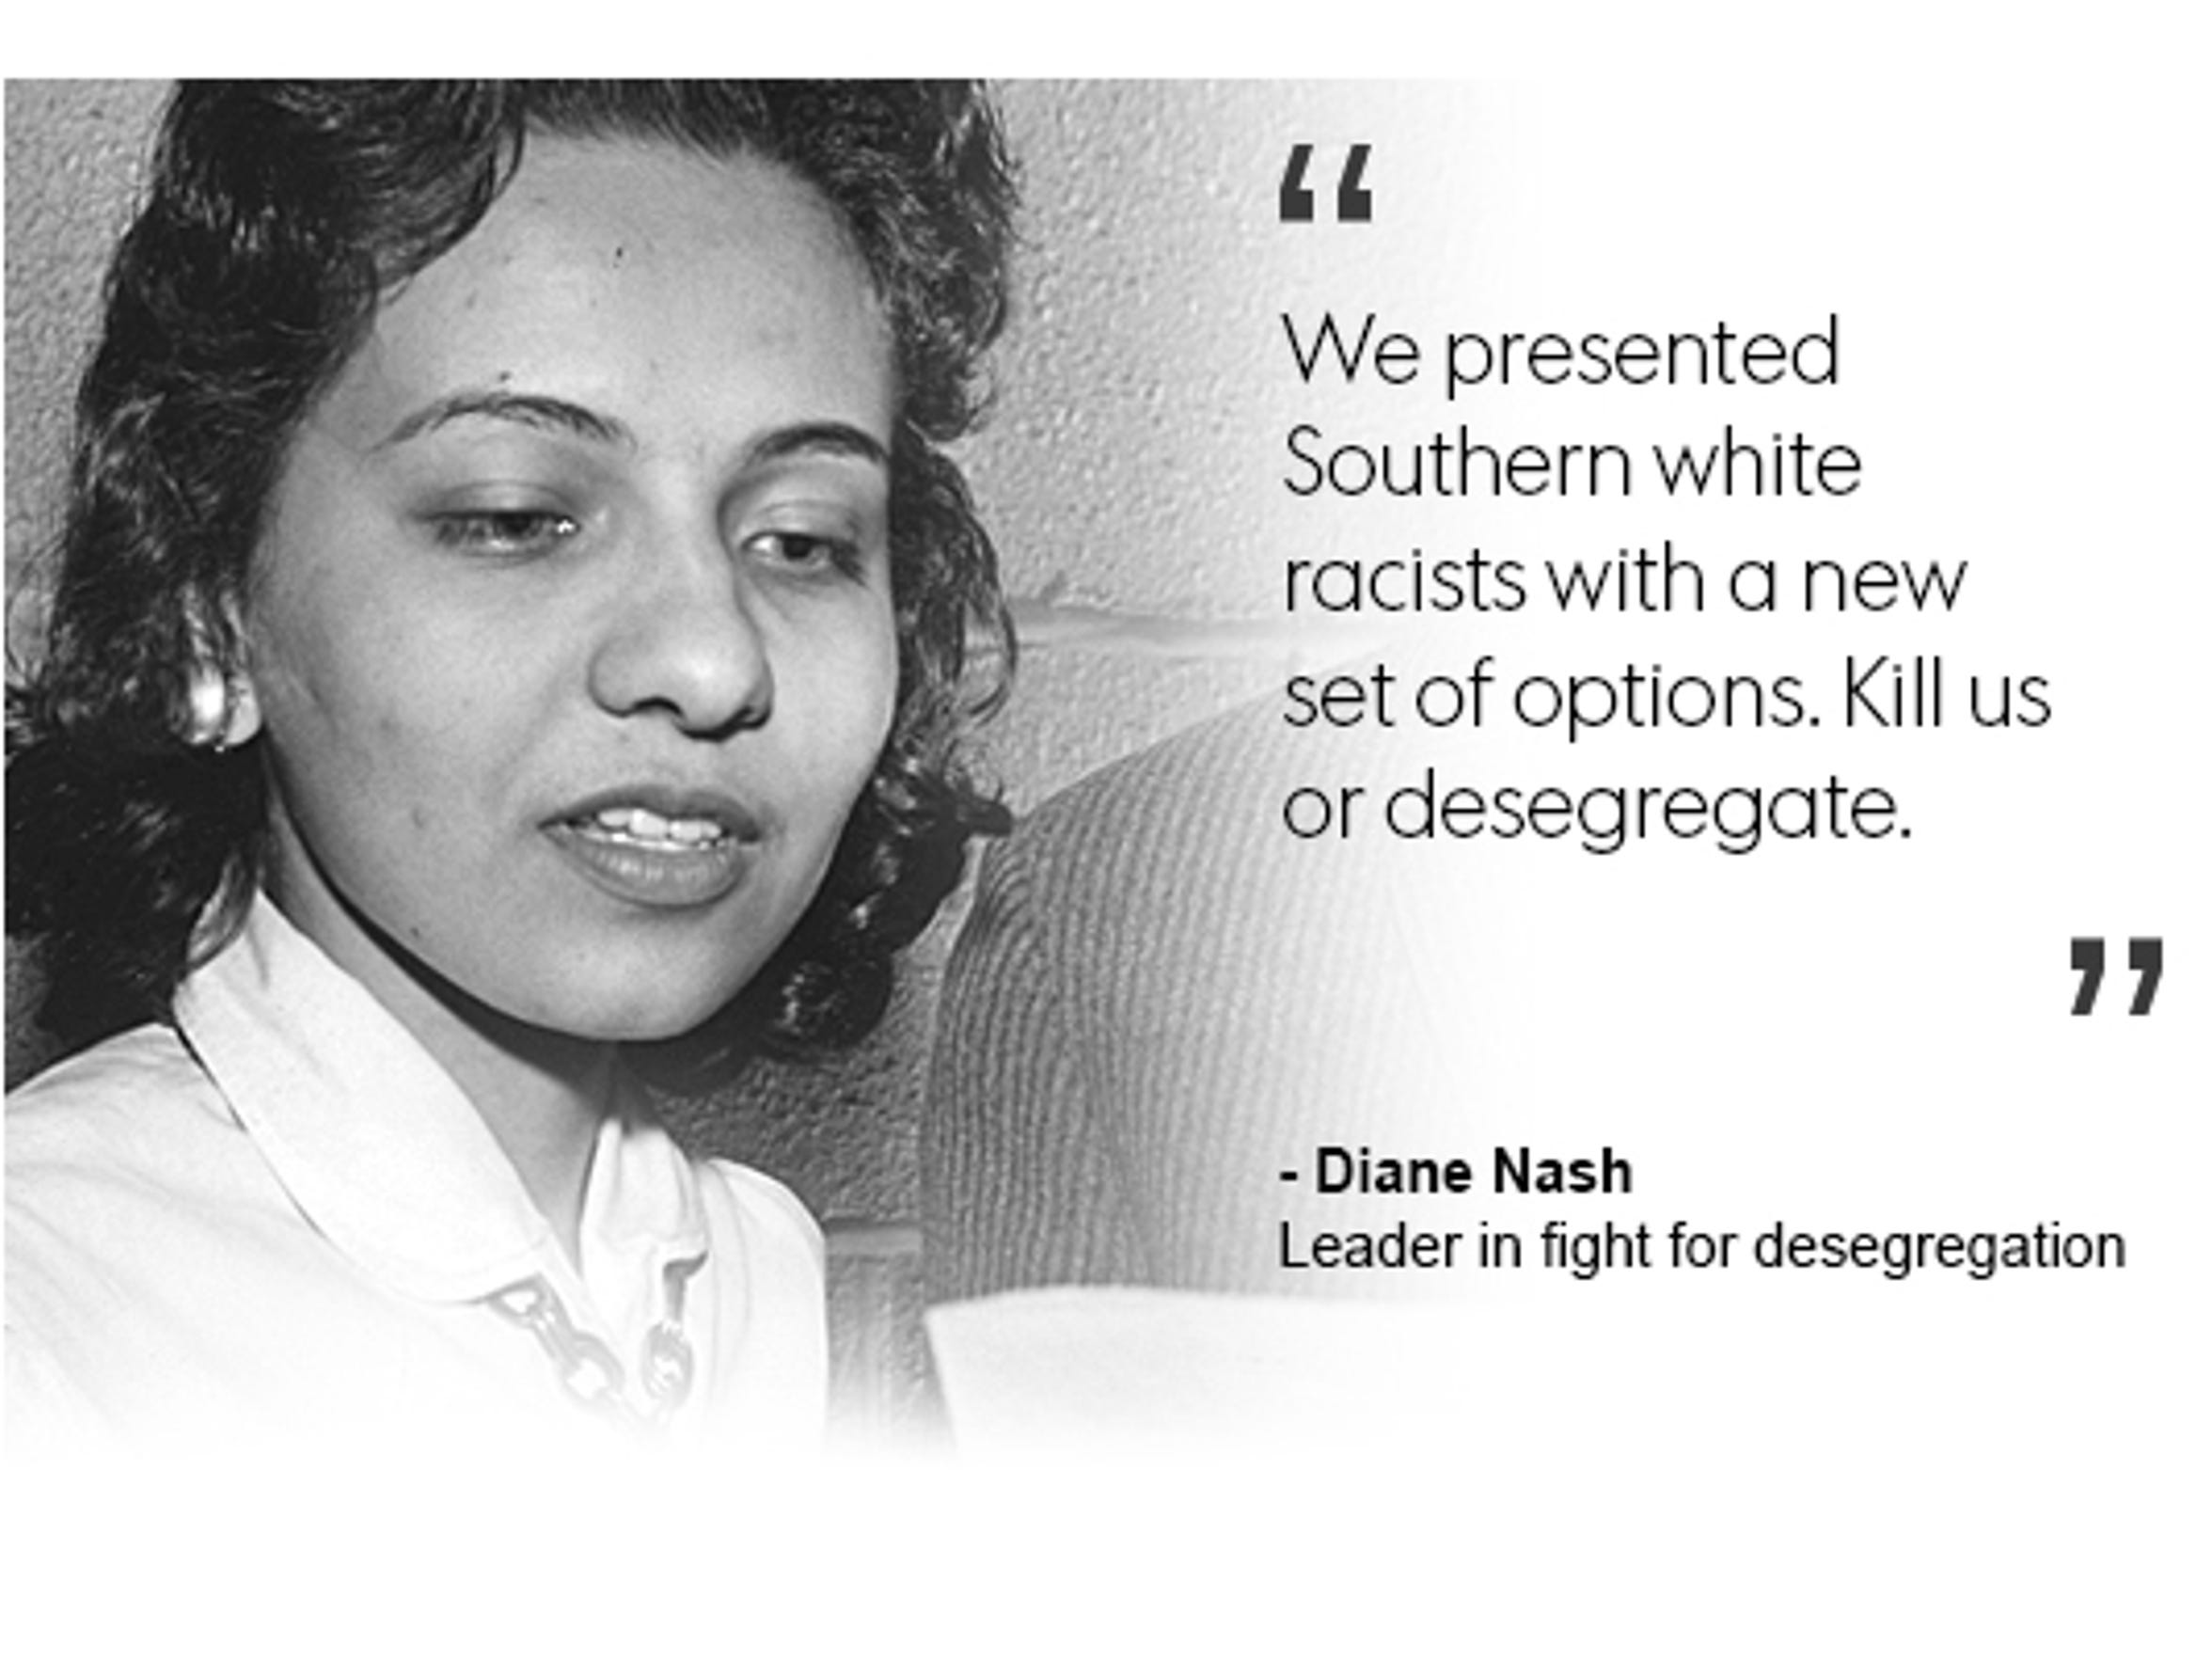 Diane Nash, leader in the fight for desegregation